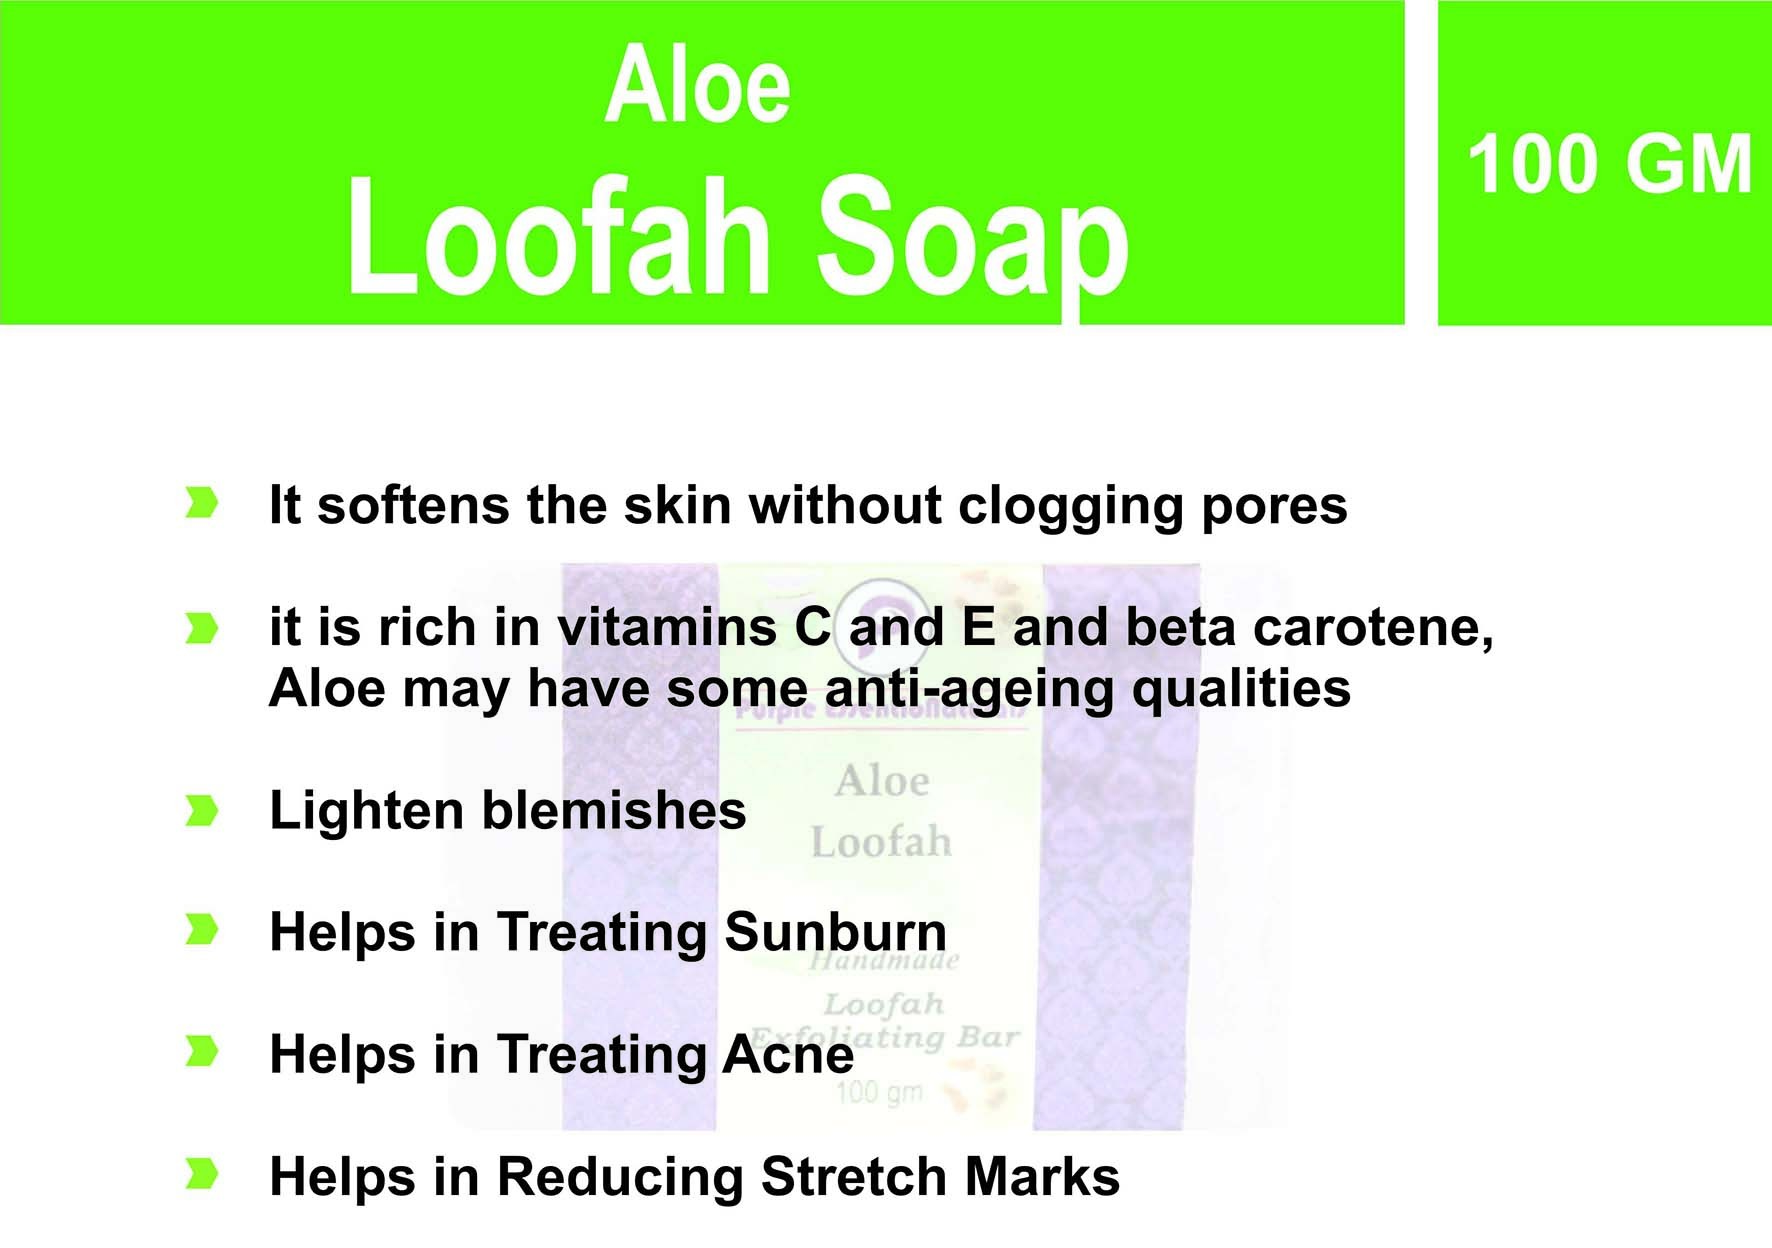 Aloe Luffah soap